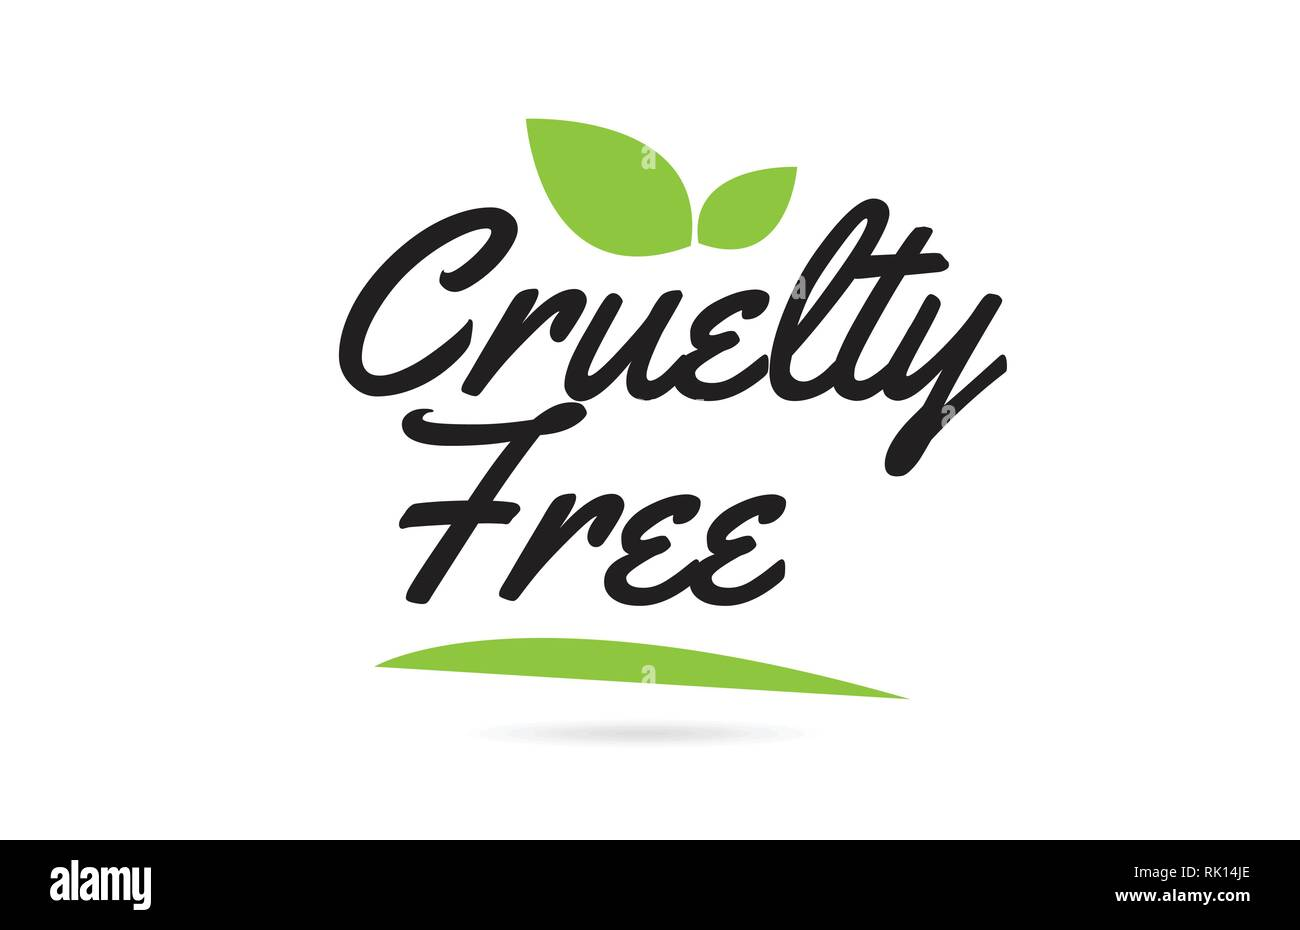 Cruelty Free hand written word text for typography design in green black with leaf  Can be used for a logo or icon Stock Vector